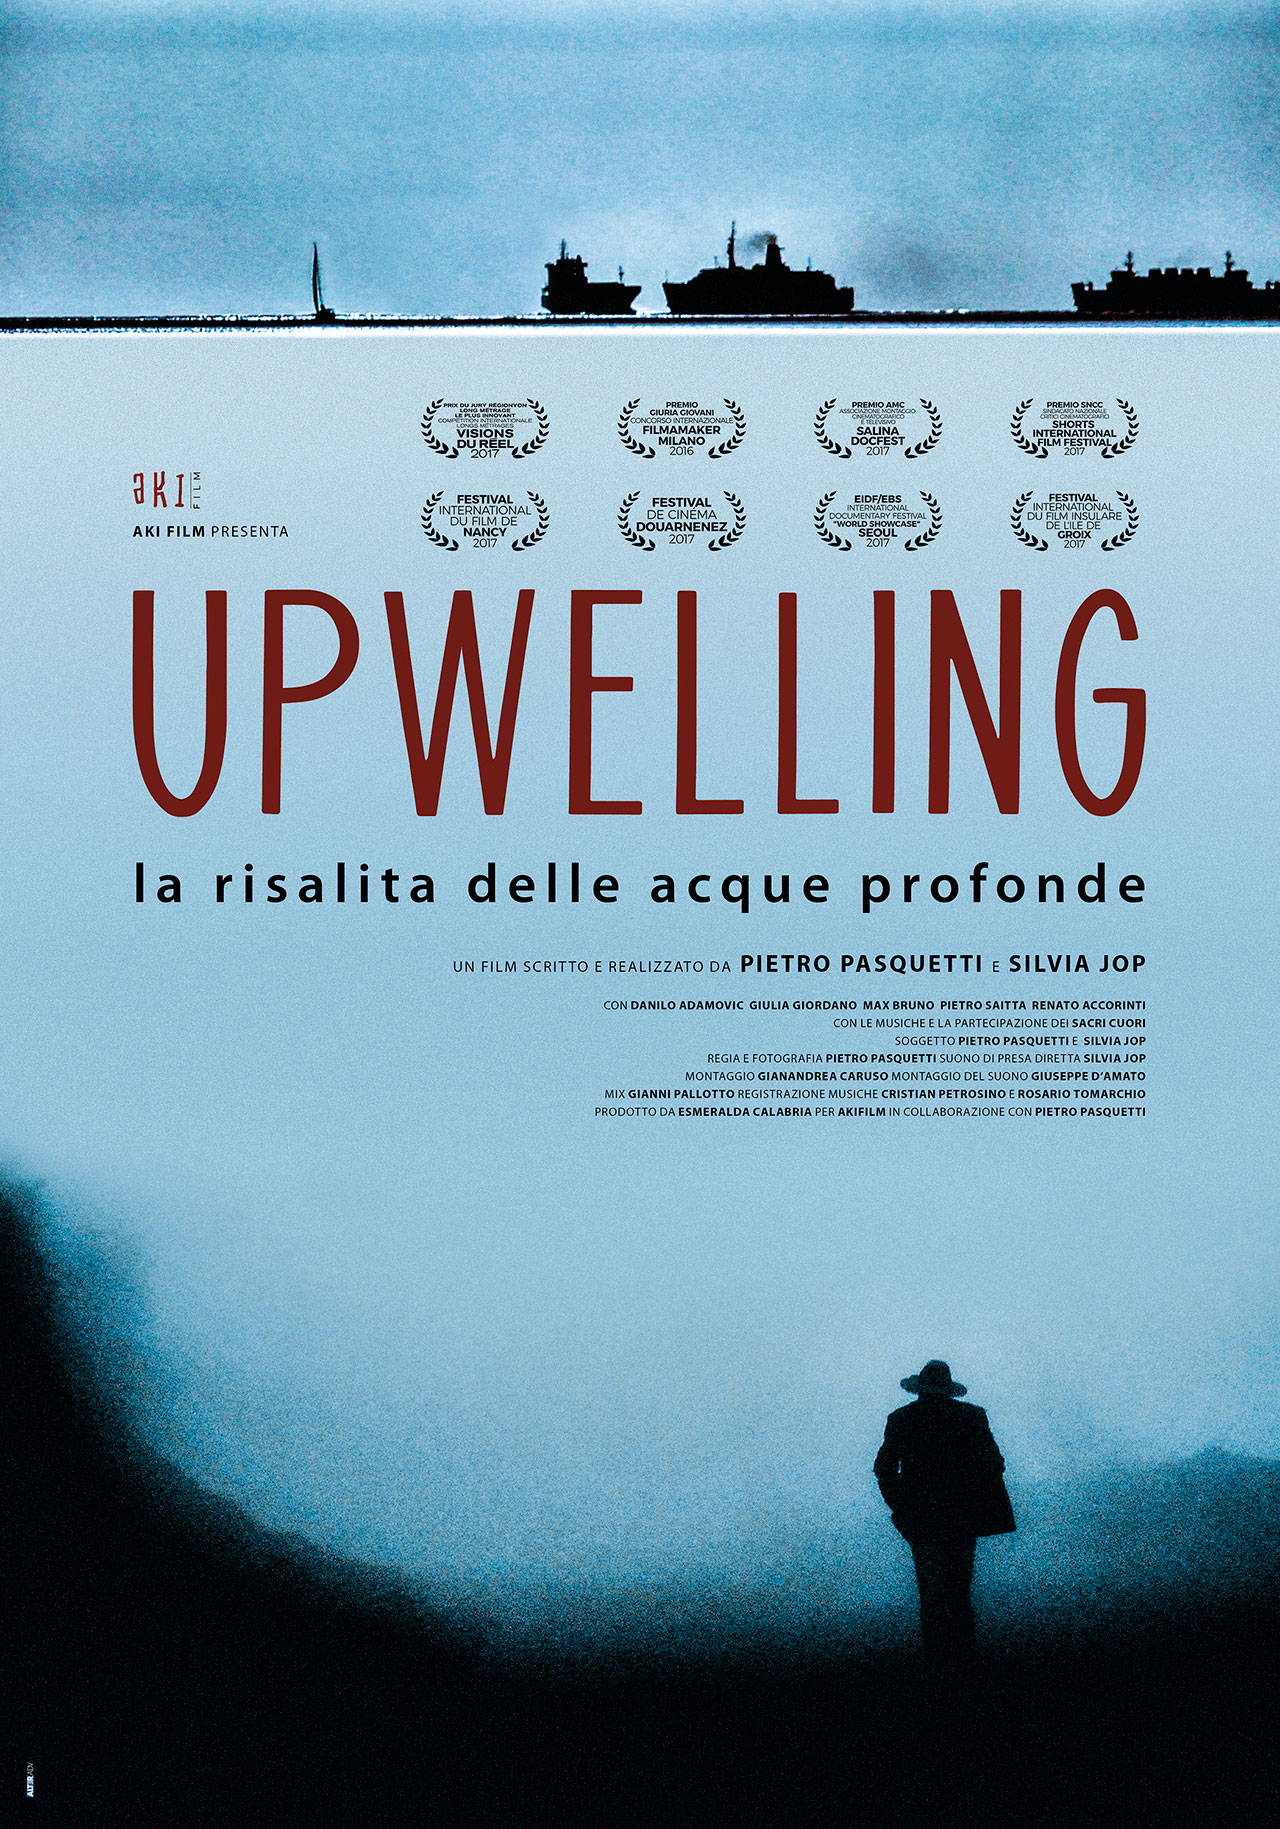 Upwelling_Poster_01_2018